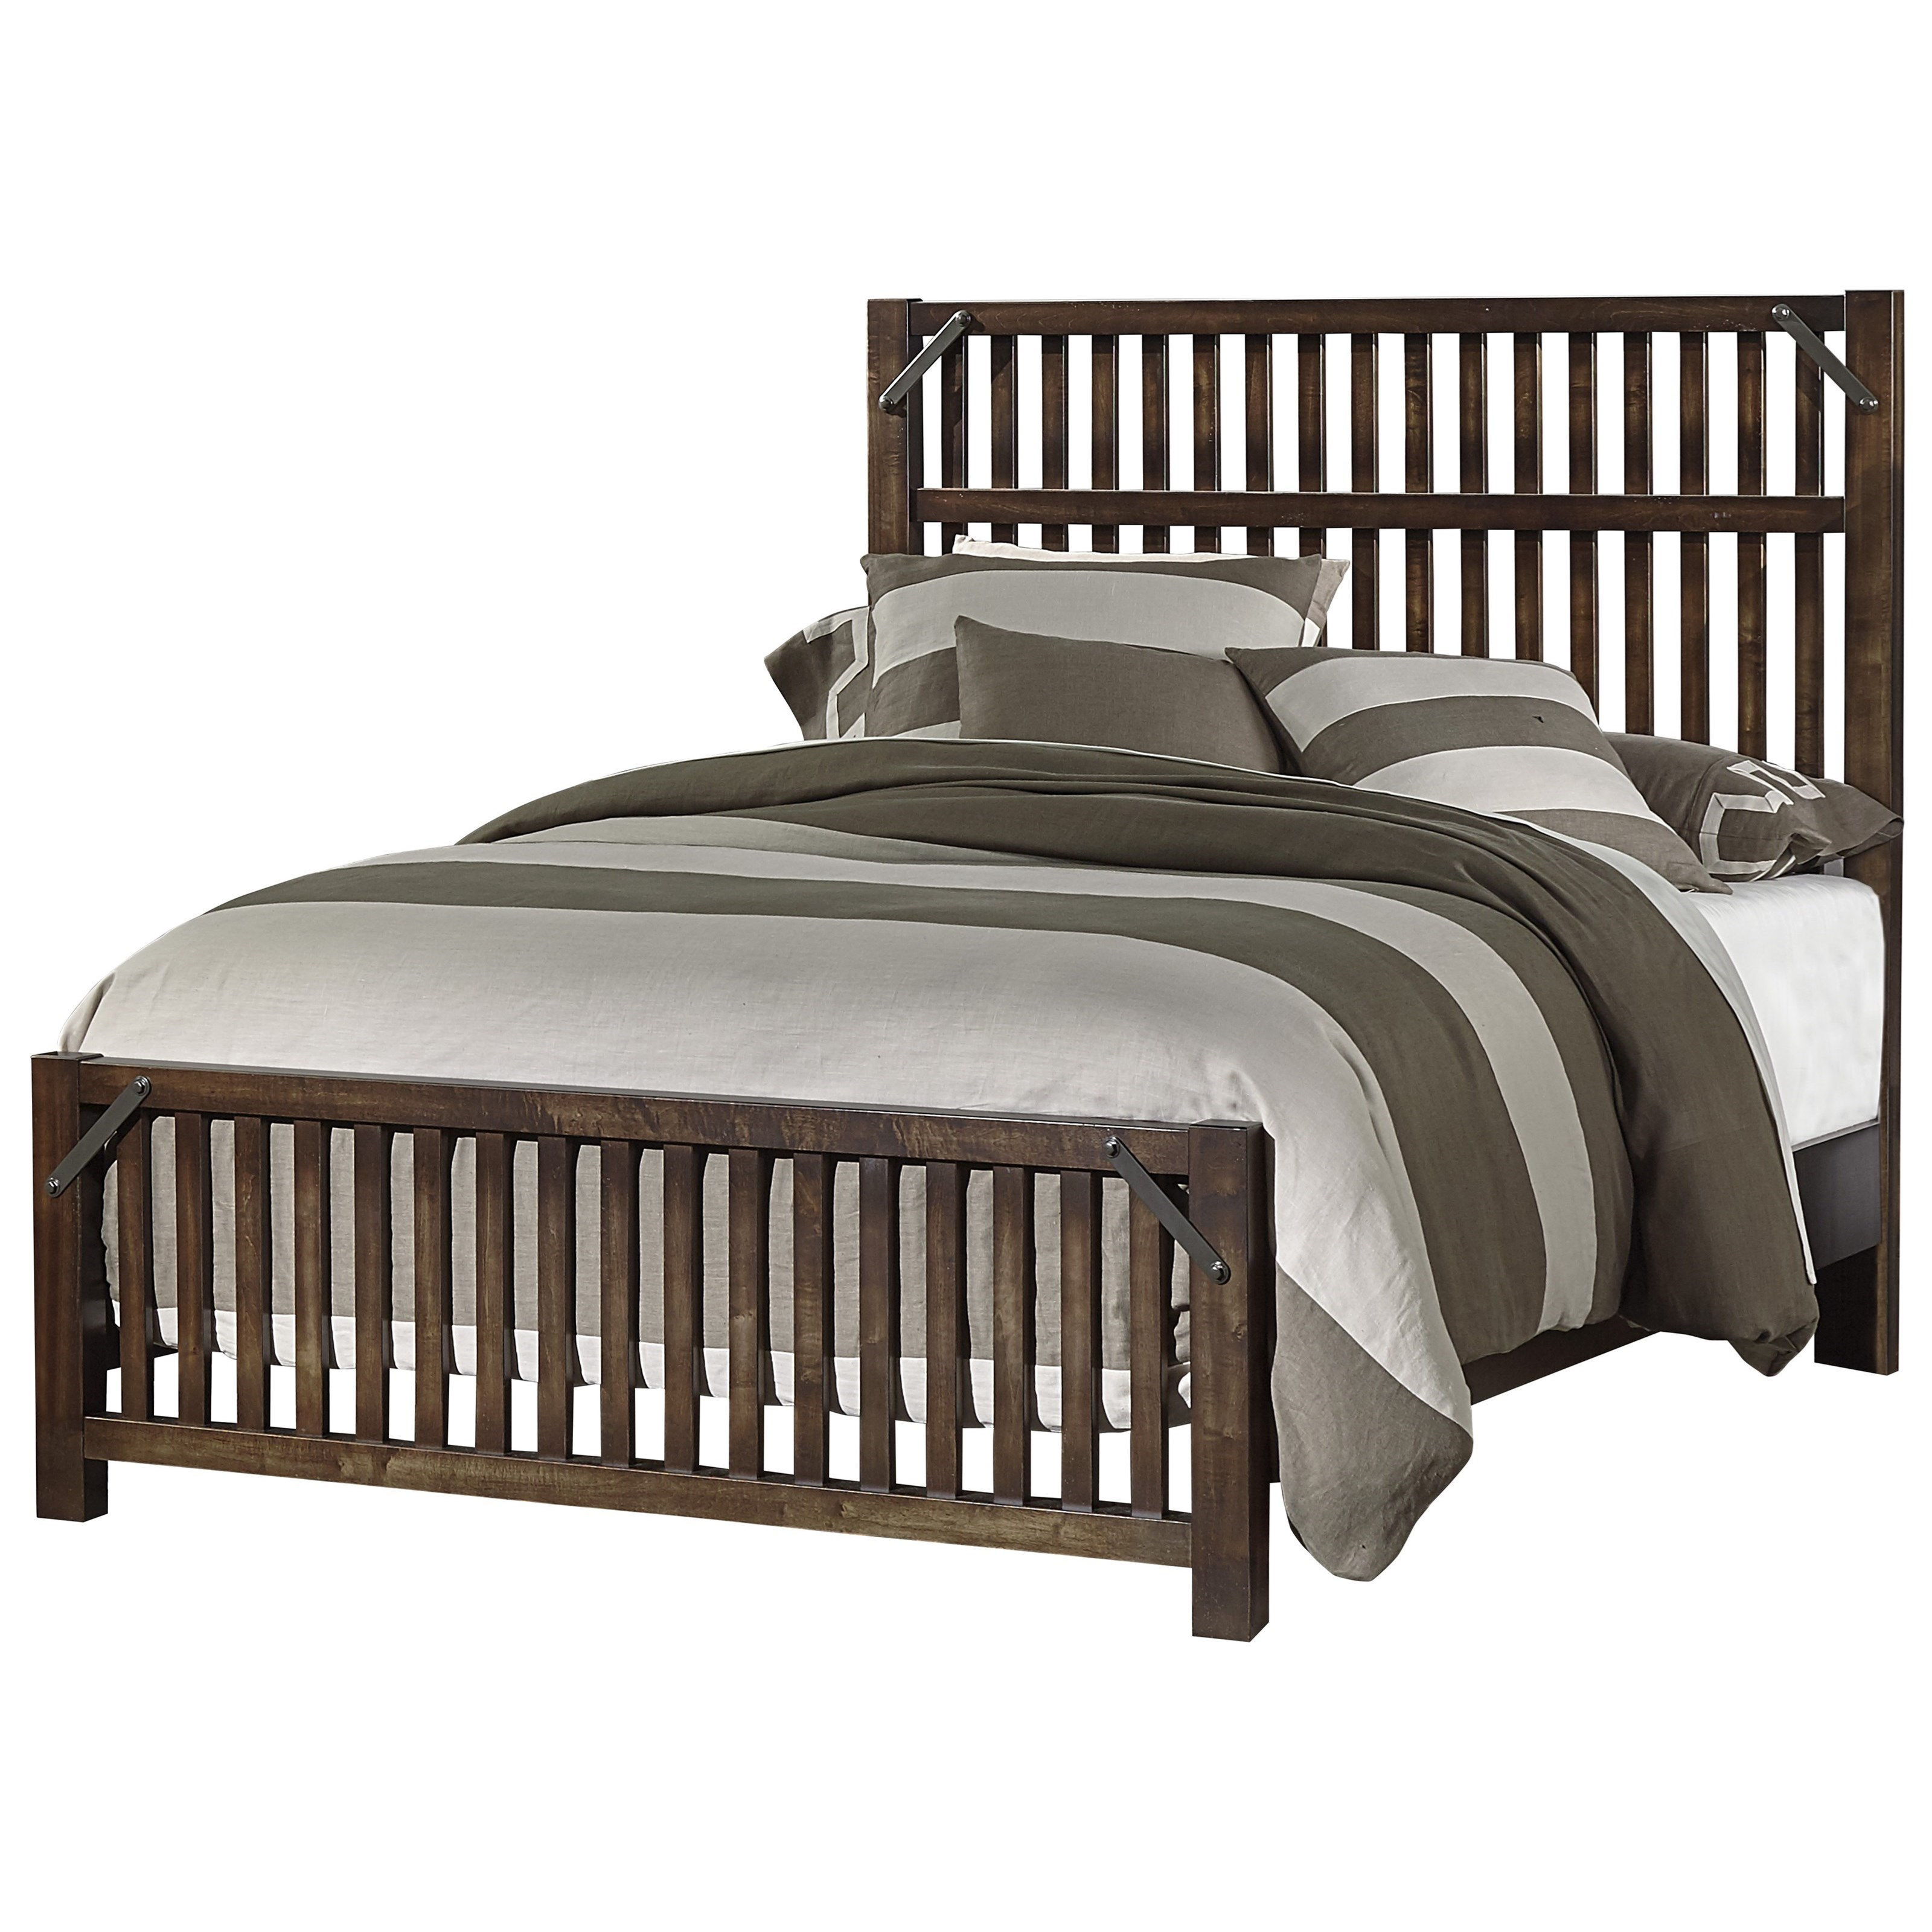 Sedgwick Queen Bed by Artisan & Post at Northeast Factory Direct